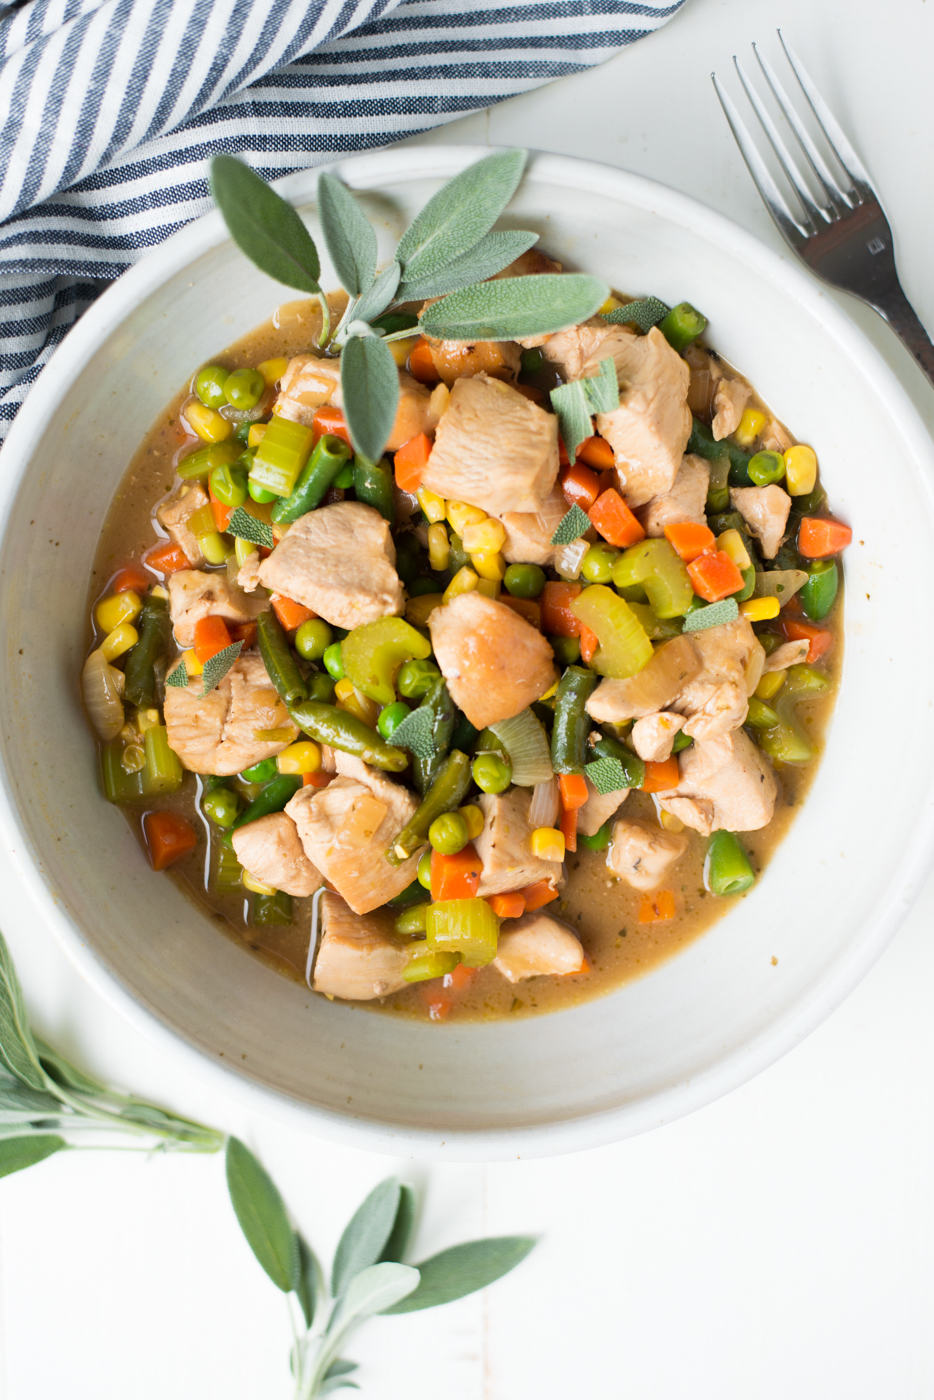 20-Minute Stovetop Chicken Pot Pie (Dairy-Free) is a super-fast weeknight dinner that's as easy as it is delicious. A naturally gluten-free, dairy-free, paleo, whole30 recipe. #realfoodwholelife #realfoodwholeliferecipe #healthyrecipe #paleo #paleorecipe #whole30 #whole30recipe #chicken #chickenrecipe #chickenpotpie #cleaneating #glutenfree #dairyfree #glutenfreerecipe #dairyfreerecipe